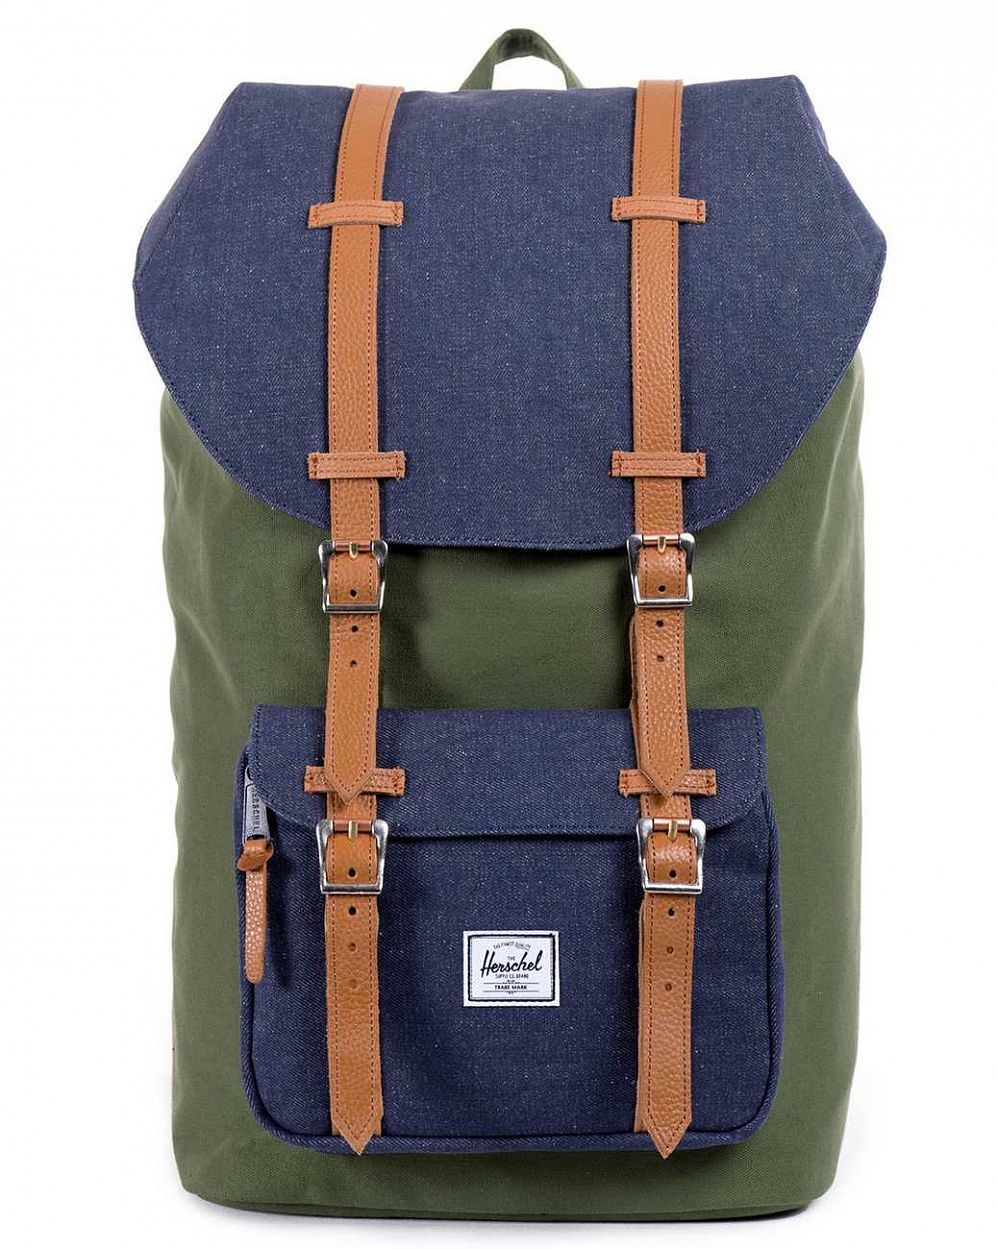 купить Рюкзак-мешок Herschel Little America Dark Army Coated Cotton Canvas Indigo Denim в Москве